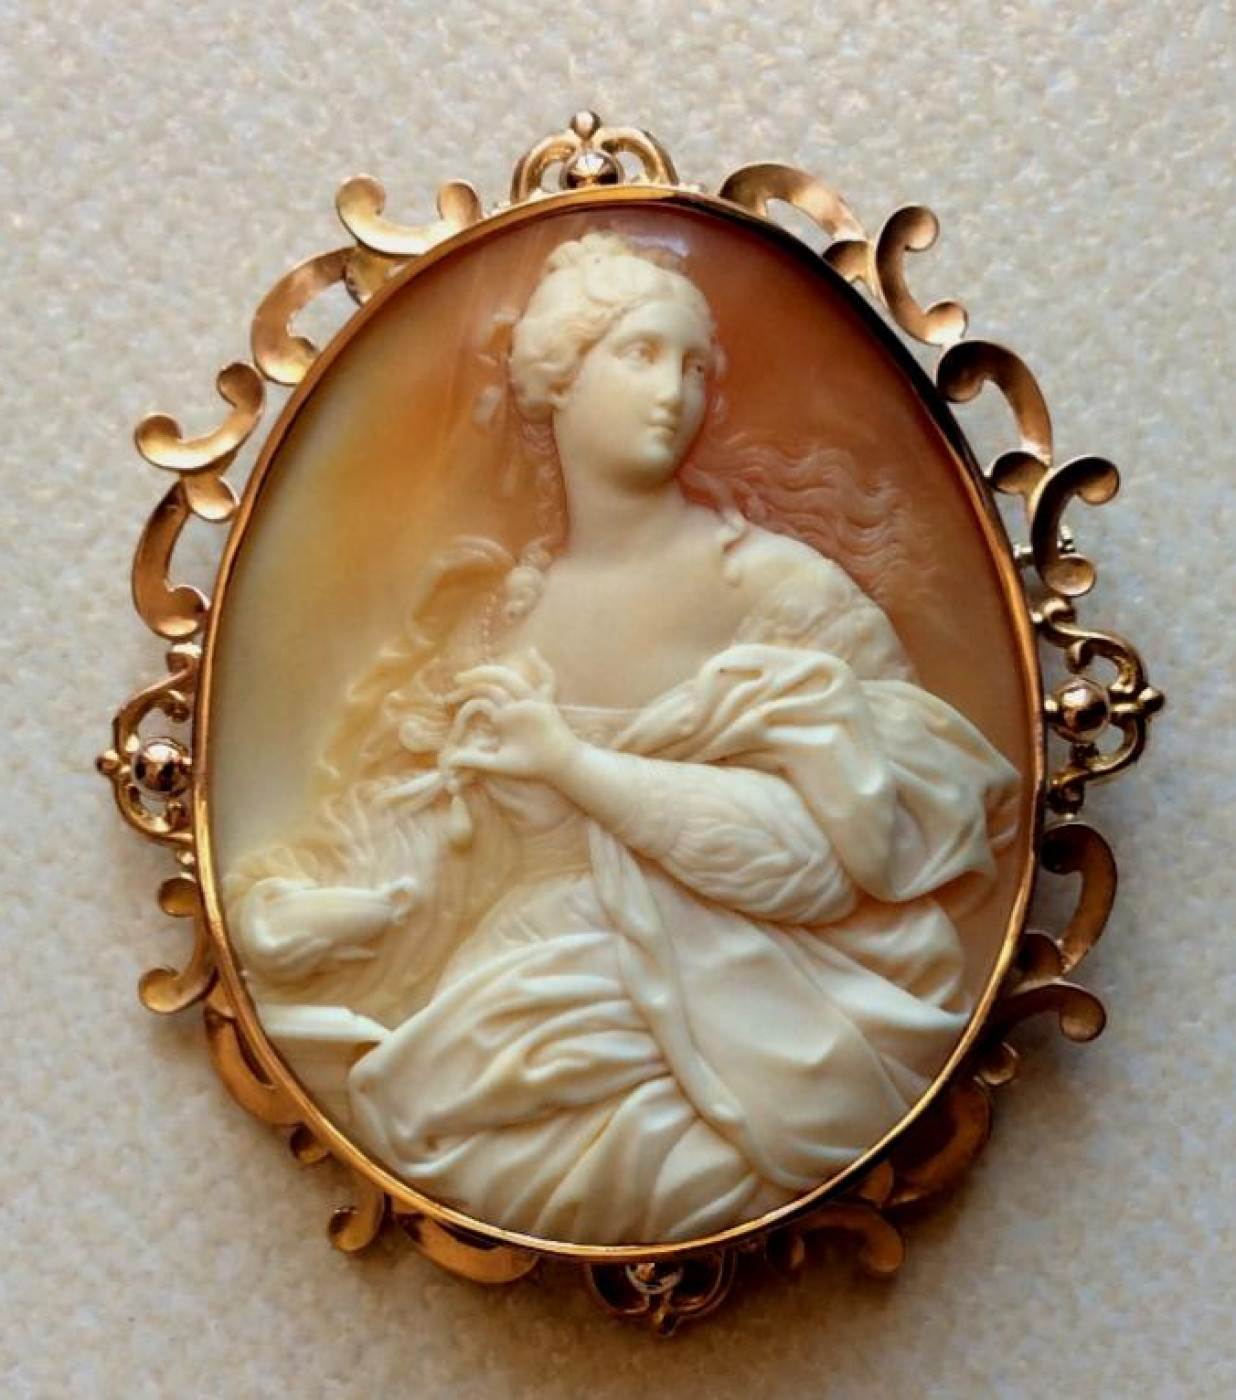 The Rarest Cameo - Cleopatra Dissolving the Pearl